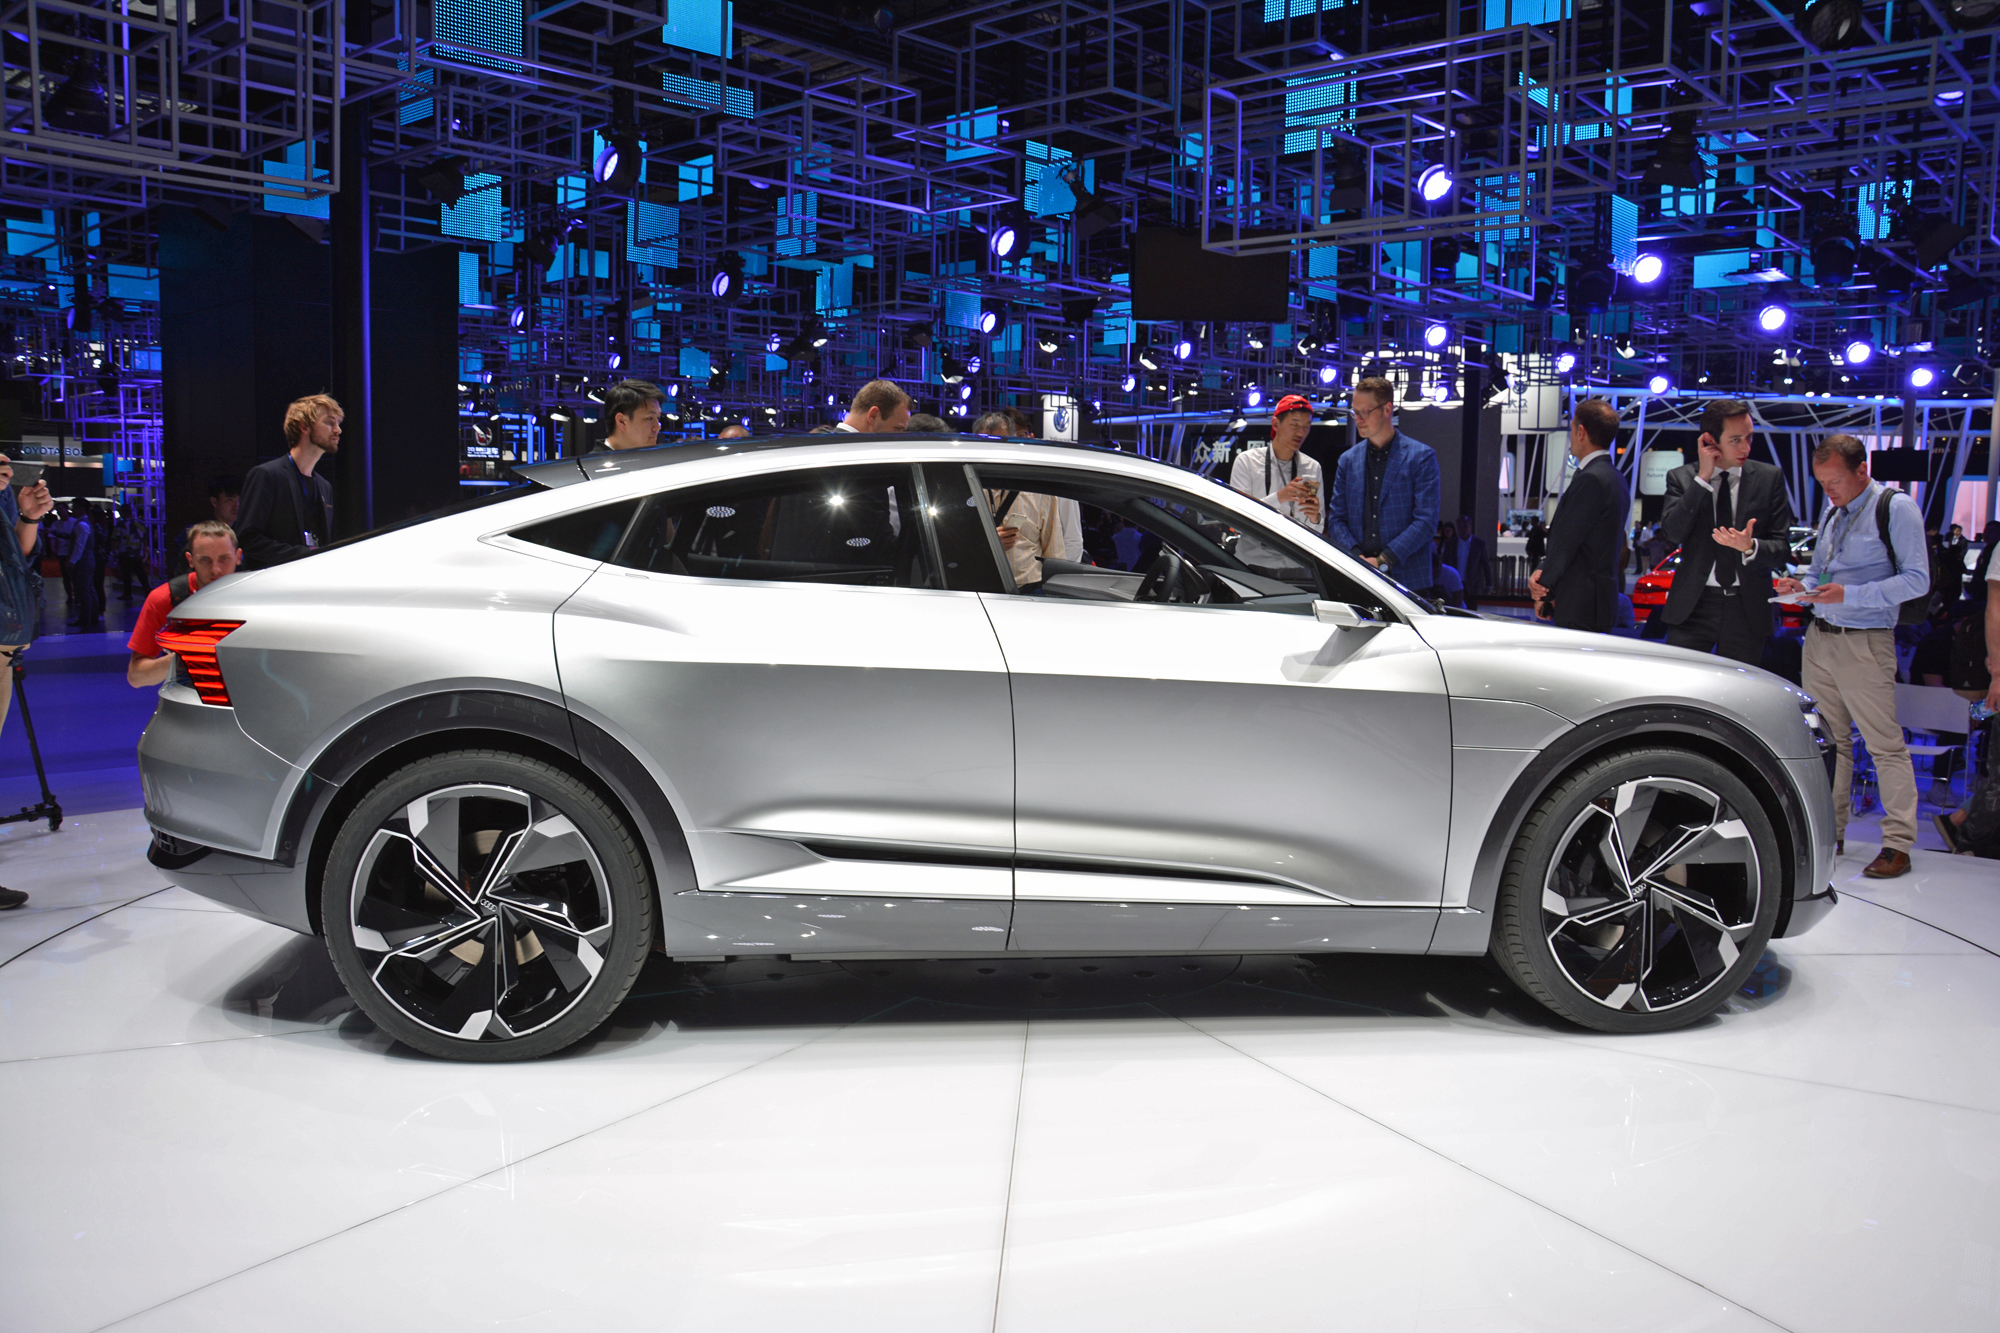 ... Concept: full electic-car details, photos from Shanghai auto show